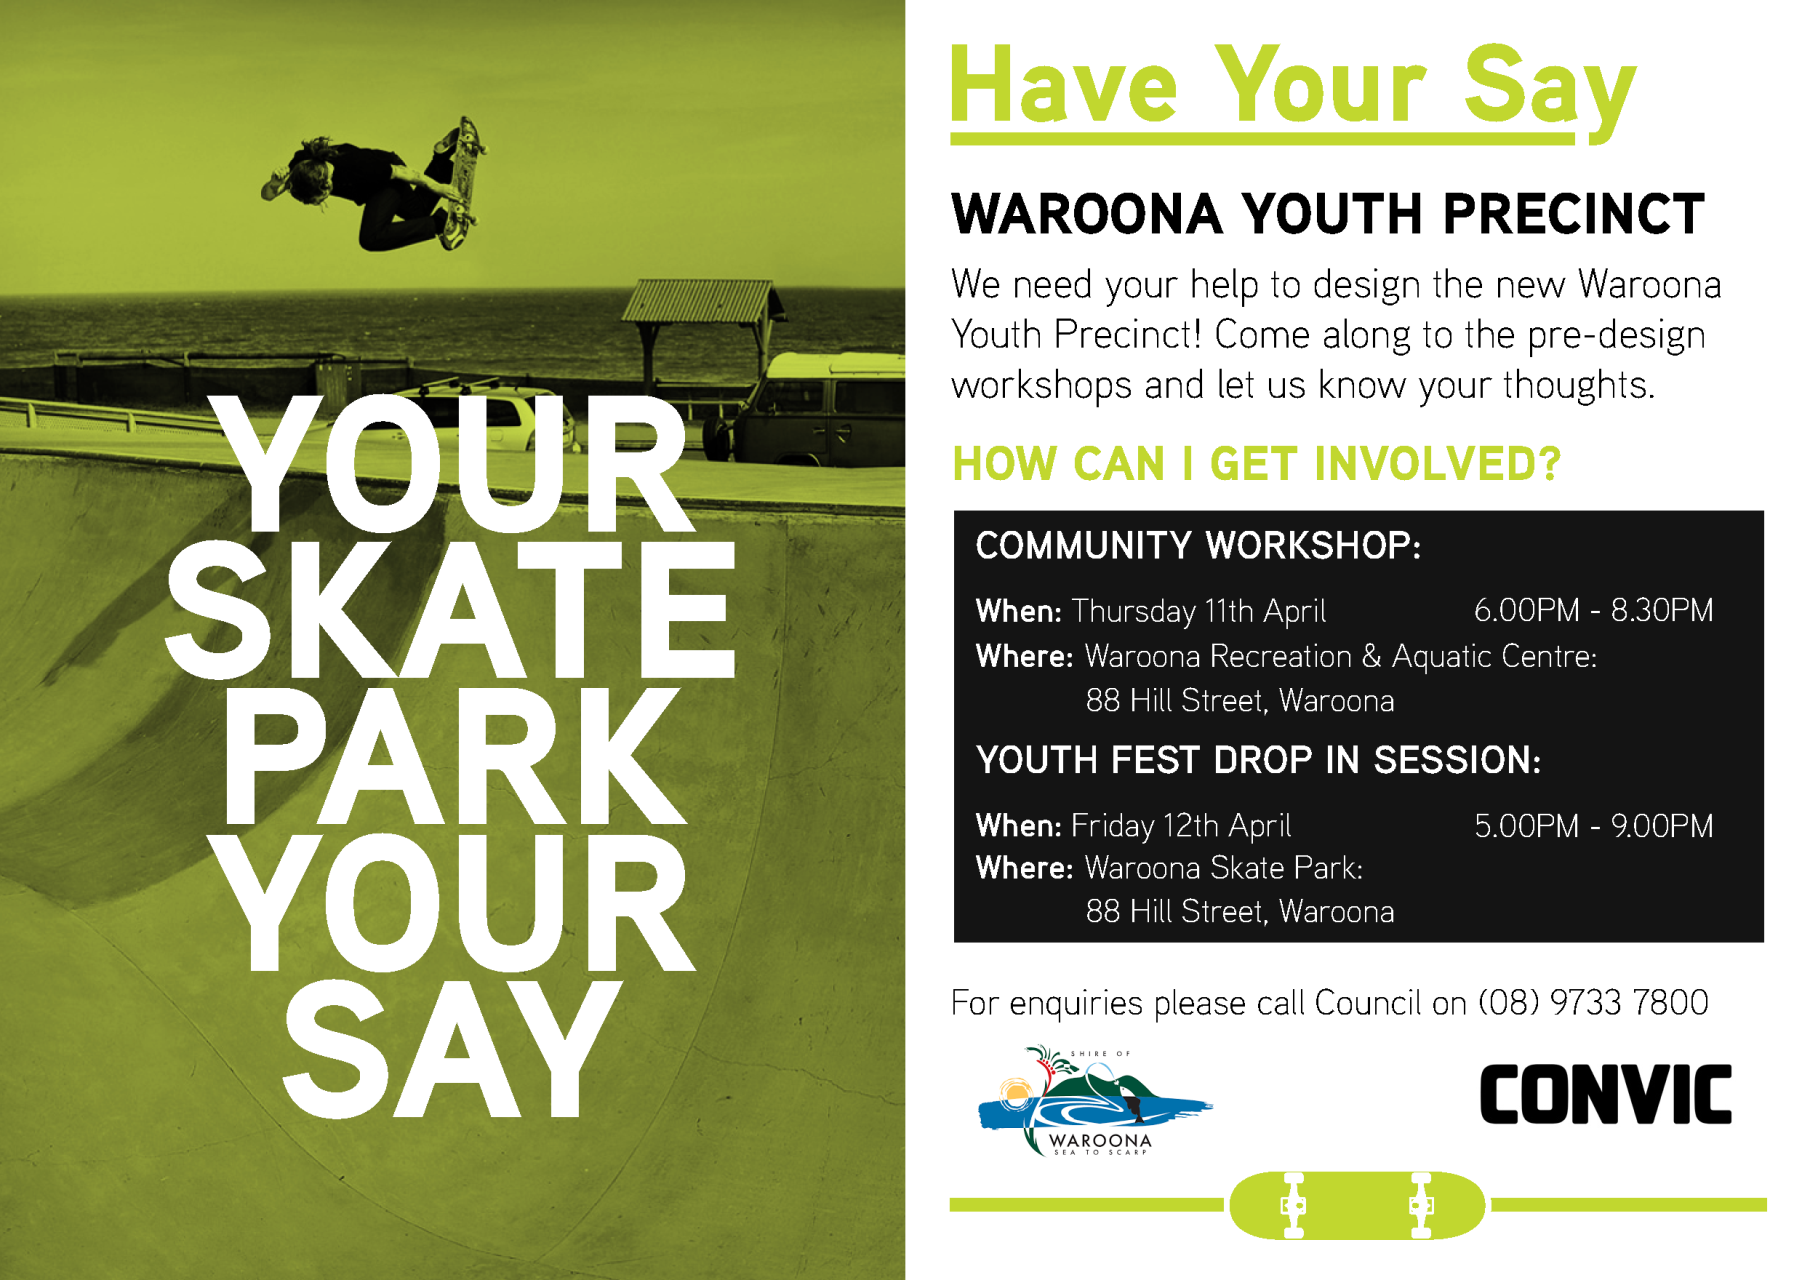 Have Your Say - Waroona Youth Precinct